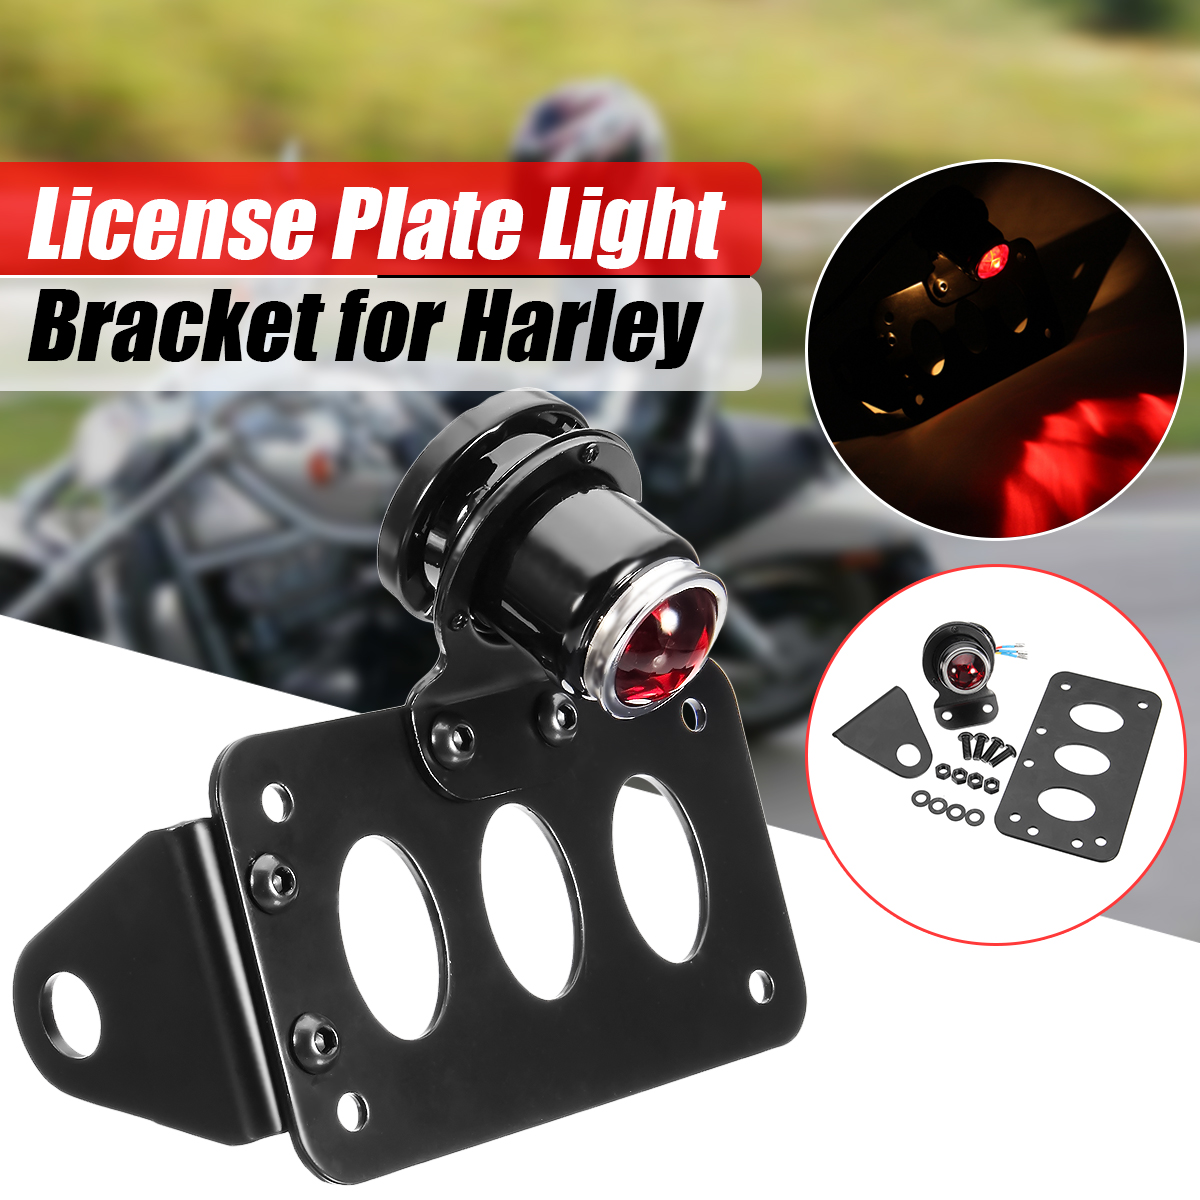 Universal Motorcycles License Plate Bracket Twin Light Integrated Taillights Side Mount Vertical Mount for Harley Sportster side axle mount vertical motorcycle license plate holder bracket tail light for harley yamaha honda bobber chopper custom